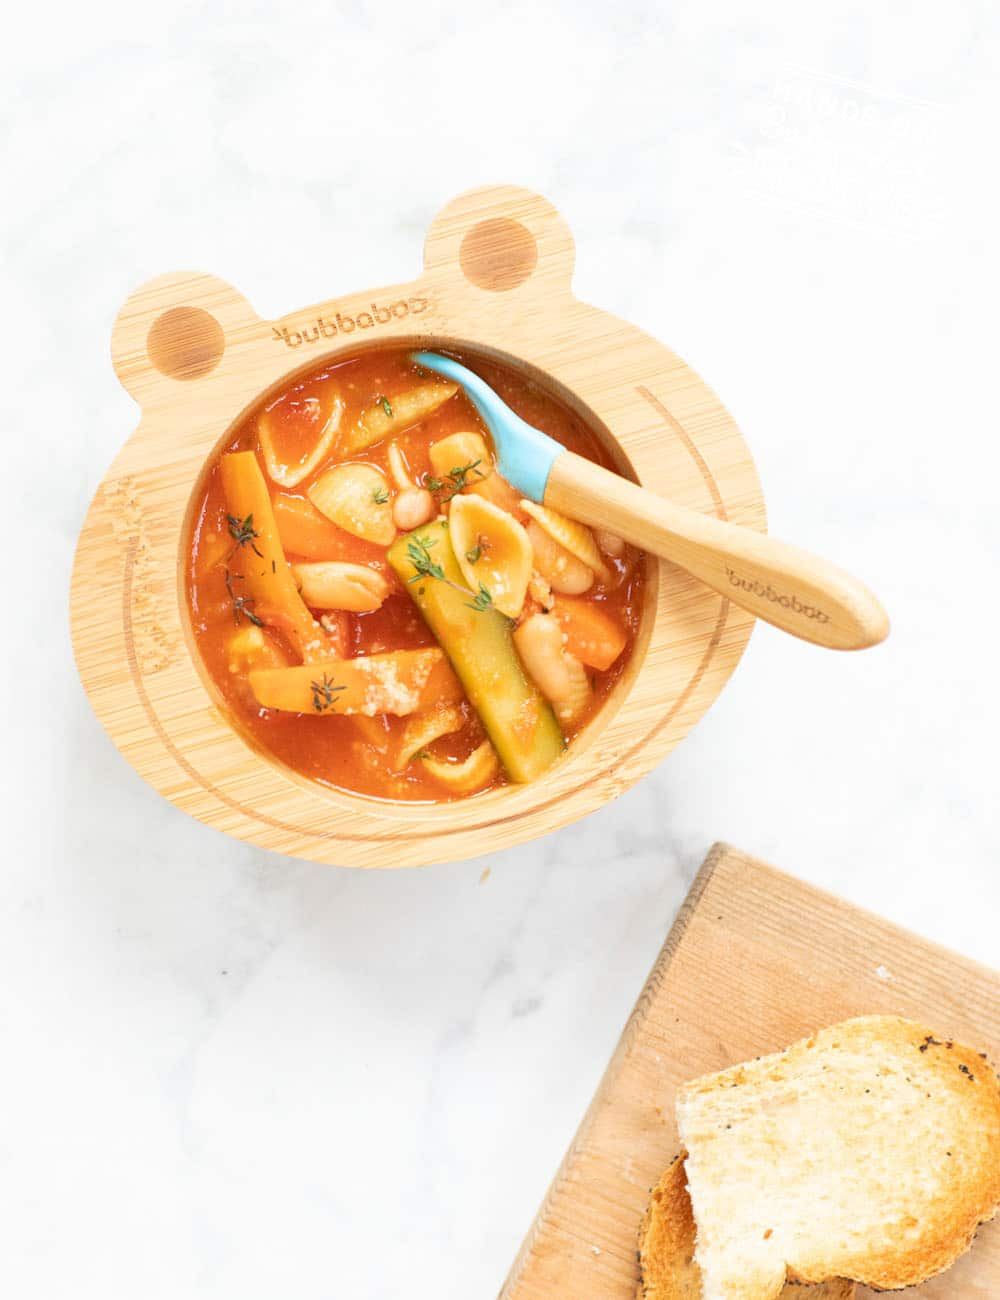 Warm Baby Led Weaning friendly veggie minestrone soup. Cutting veggies correctly for babies is the key to making this soup baby friendly! #soup #babyledweaning #vegan #vegetarian